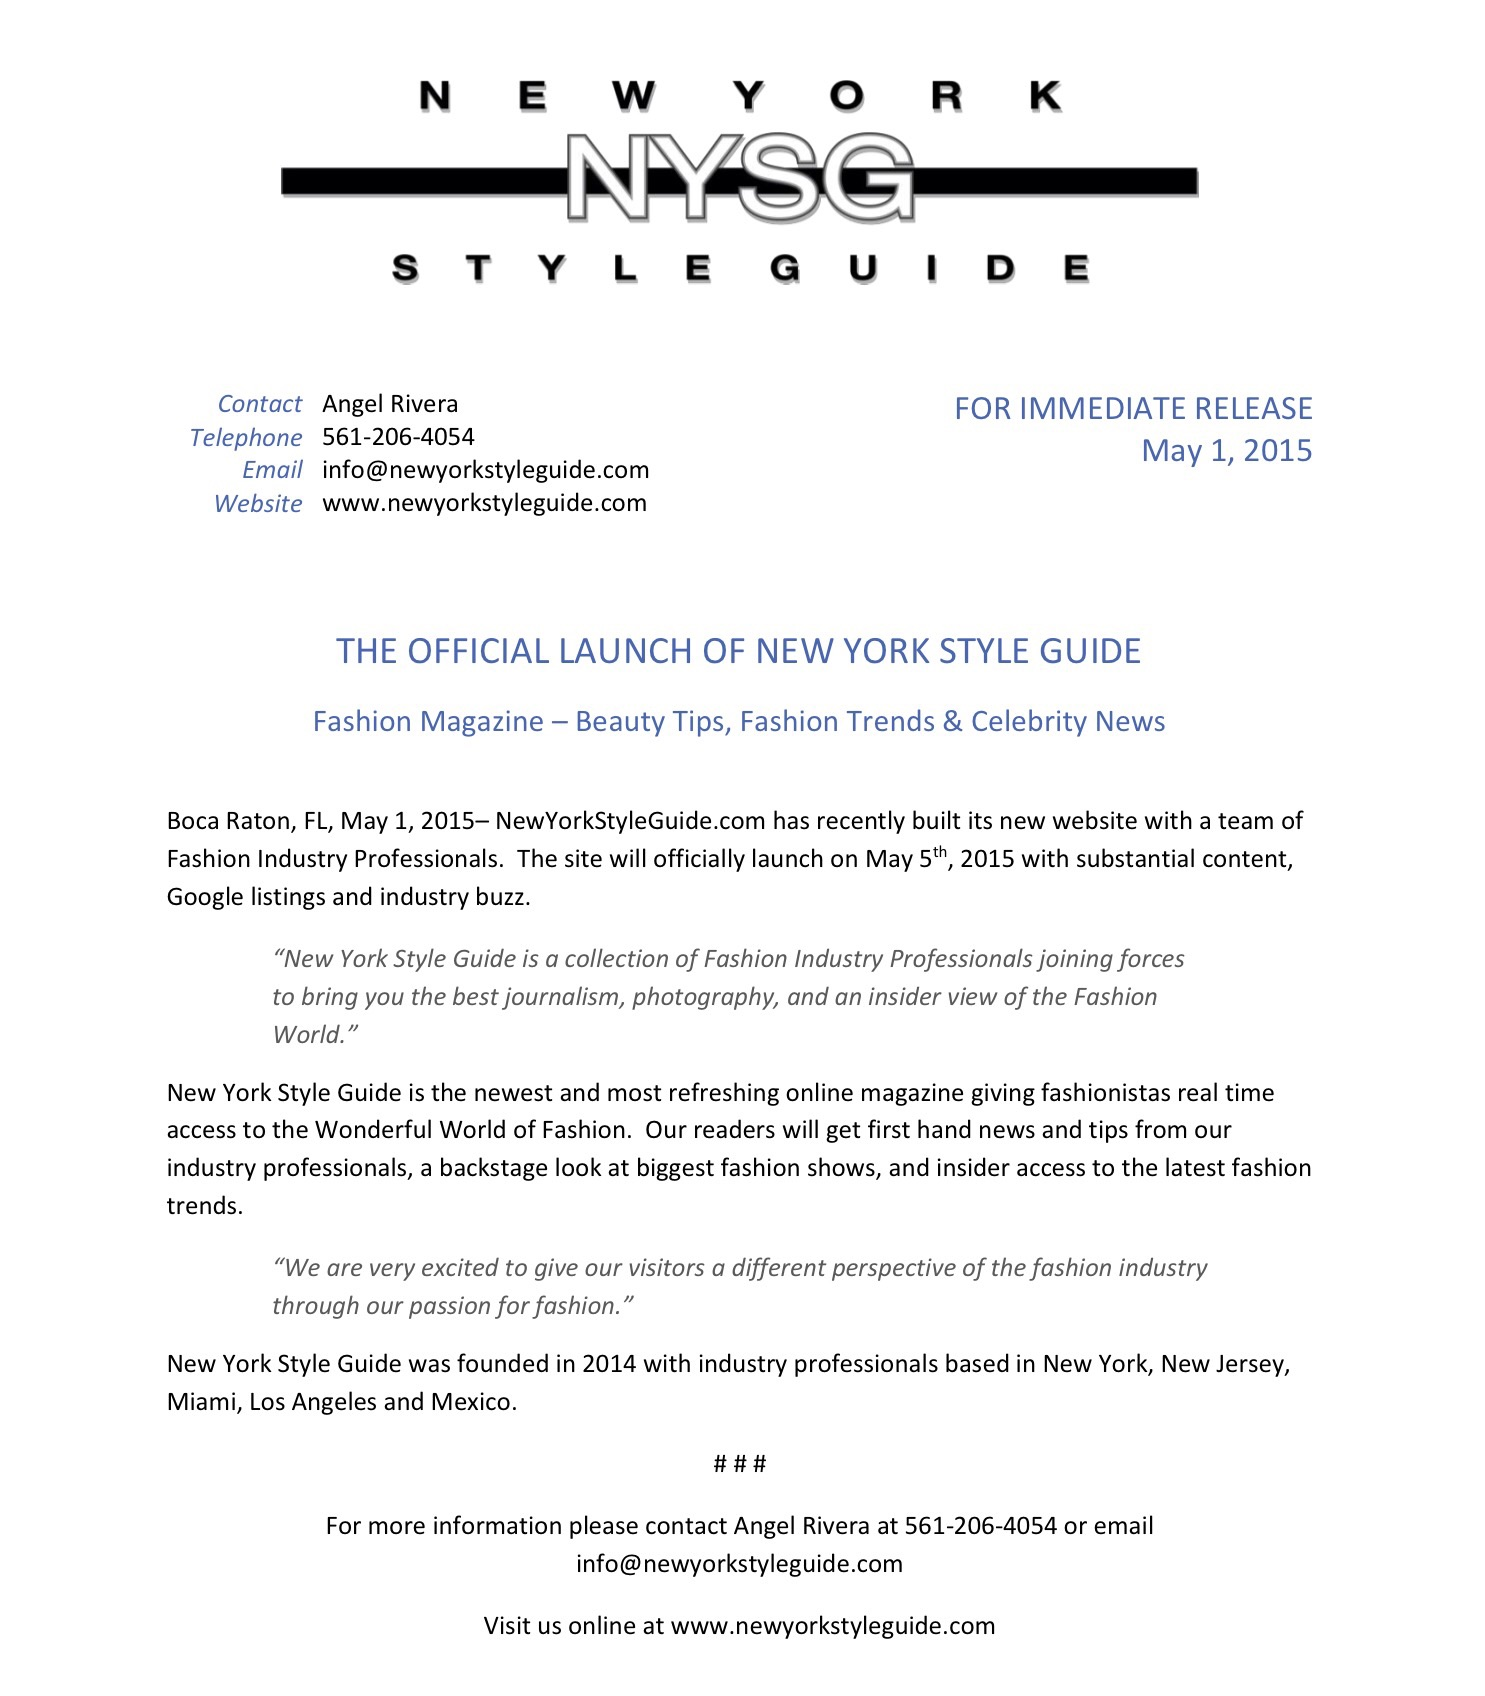 New York Style Guide Press Release New York Style Guide